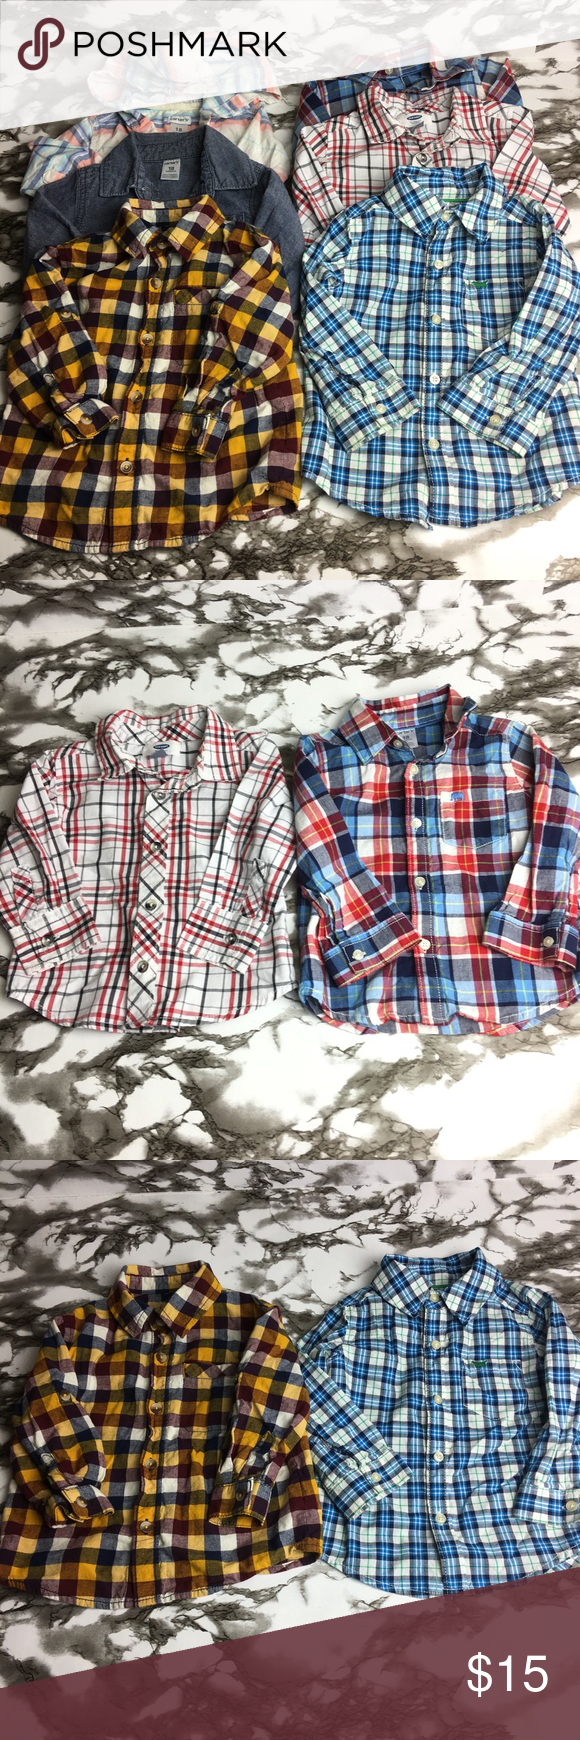 2a229b06 Infant toddler boy Button Down Long sleeve shirts Lot of 6 Infant / toddler  boys 18